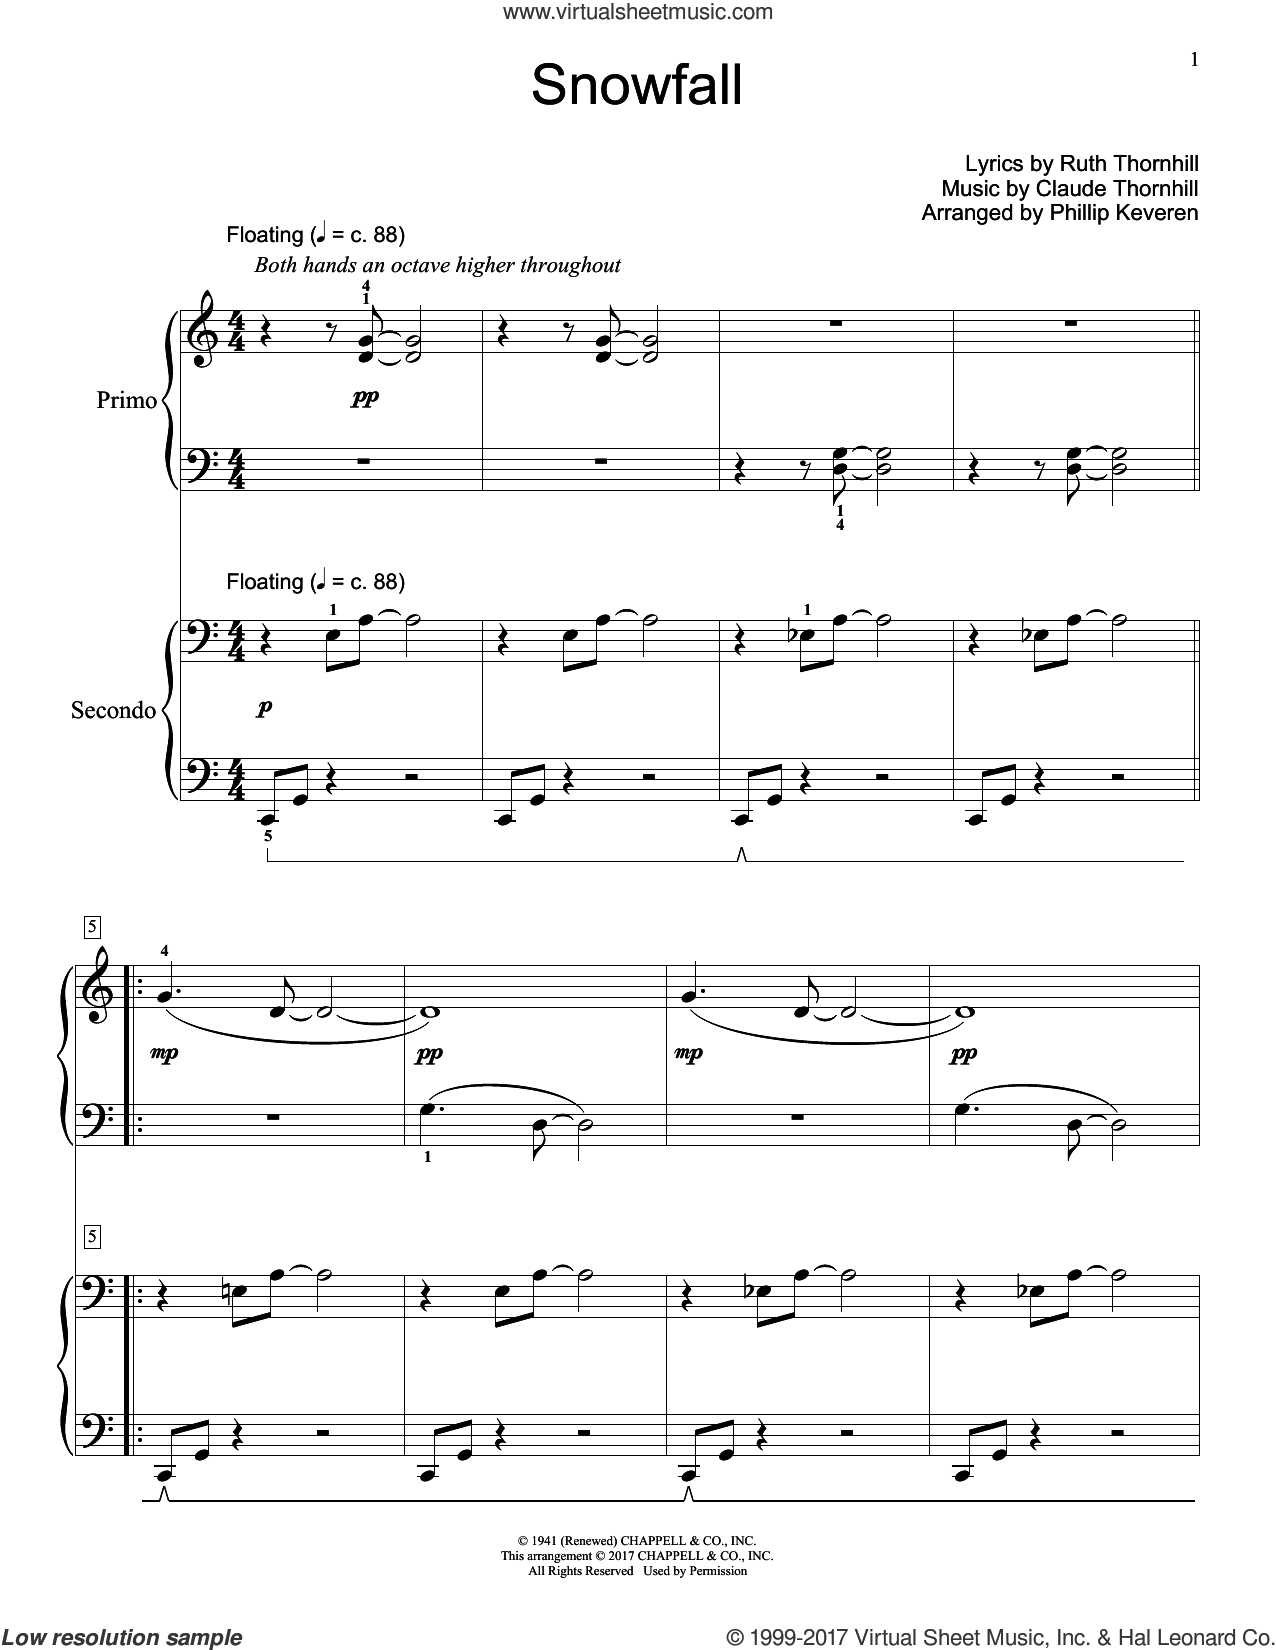 Snowfall sheet music for piano four hands by Claude Thornhill and Ruth Thornhill, intermediate skill level